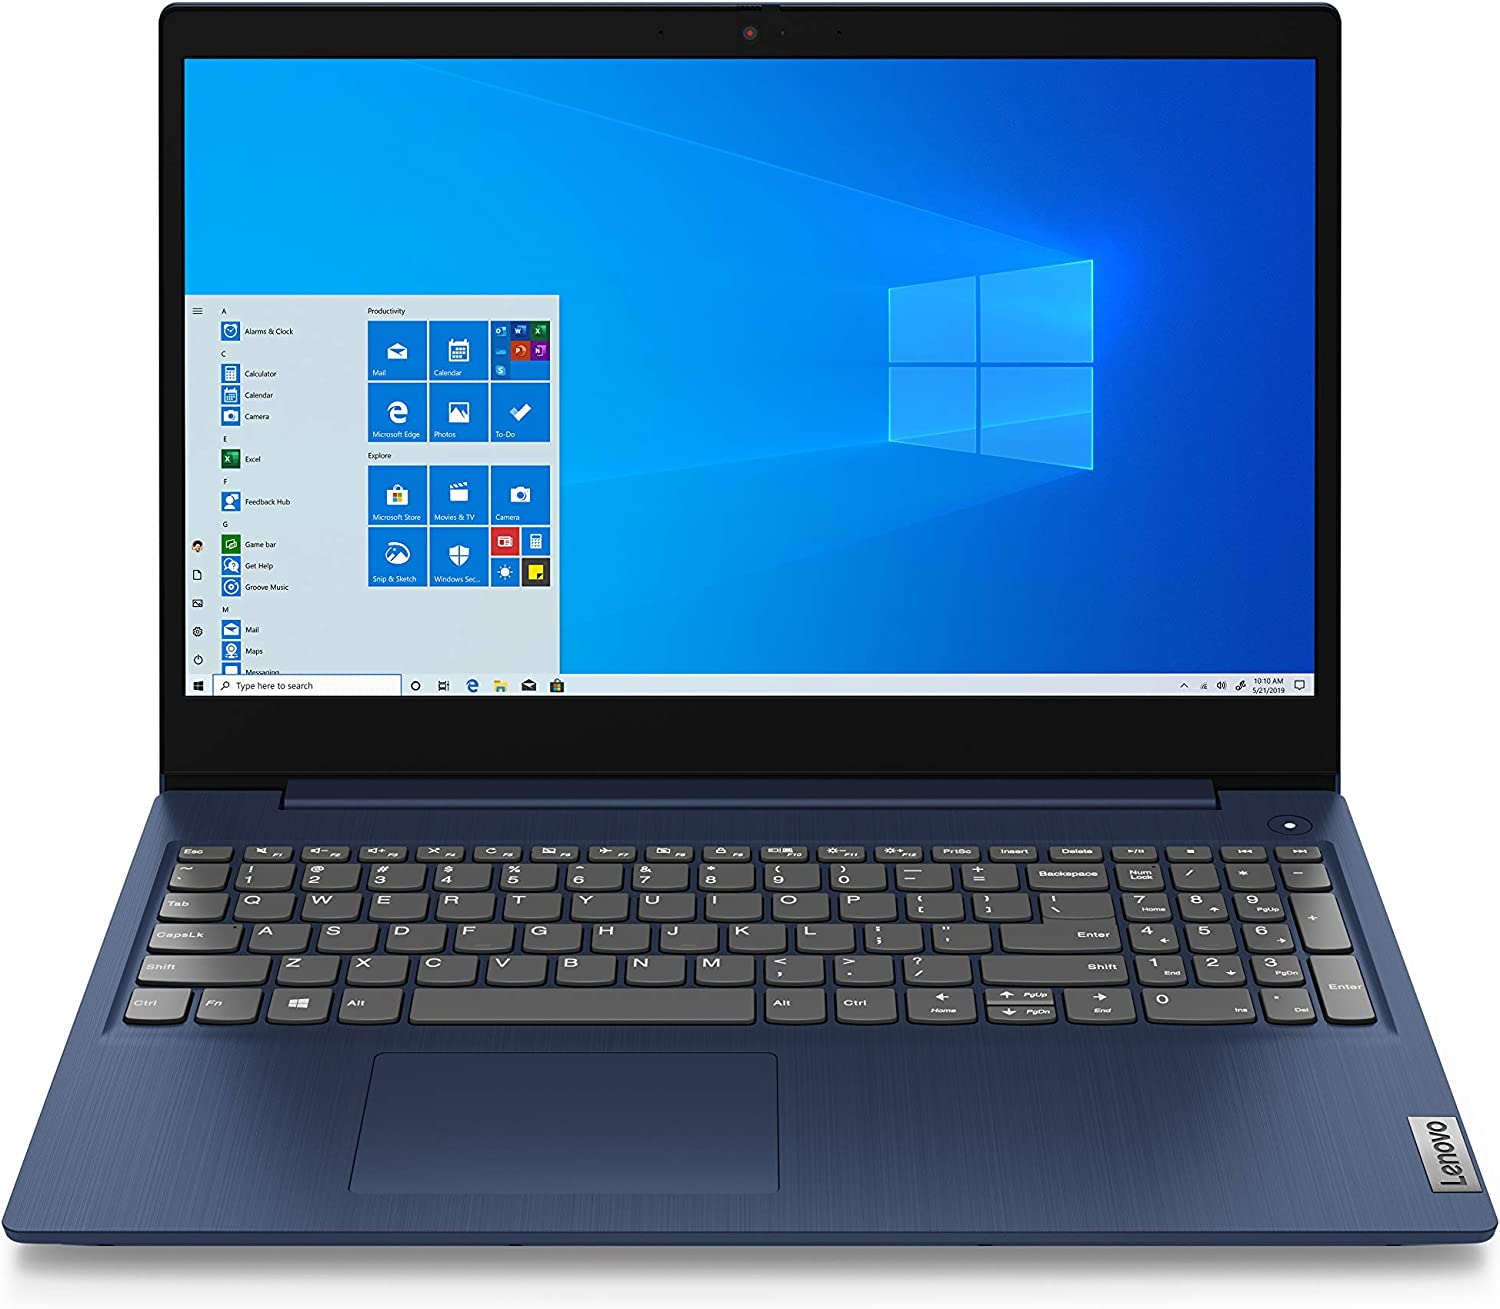 "2020 Lenovo IdeaPad 3 15.6"" Full HD Laptop, AMD Ryzen 5 3500U Quad-Core Processor, 8GB Memory, 256GB SSD, Vega 8 Graphics, Webcam, WiFi, Windows 10, Abyss Blue, Google Classroom Compatible"